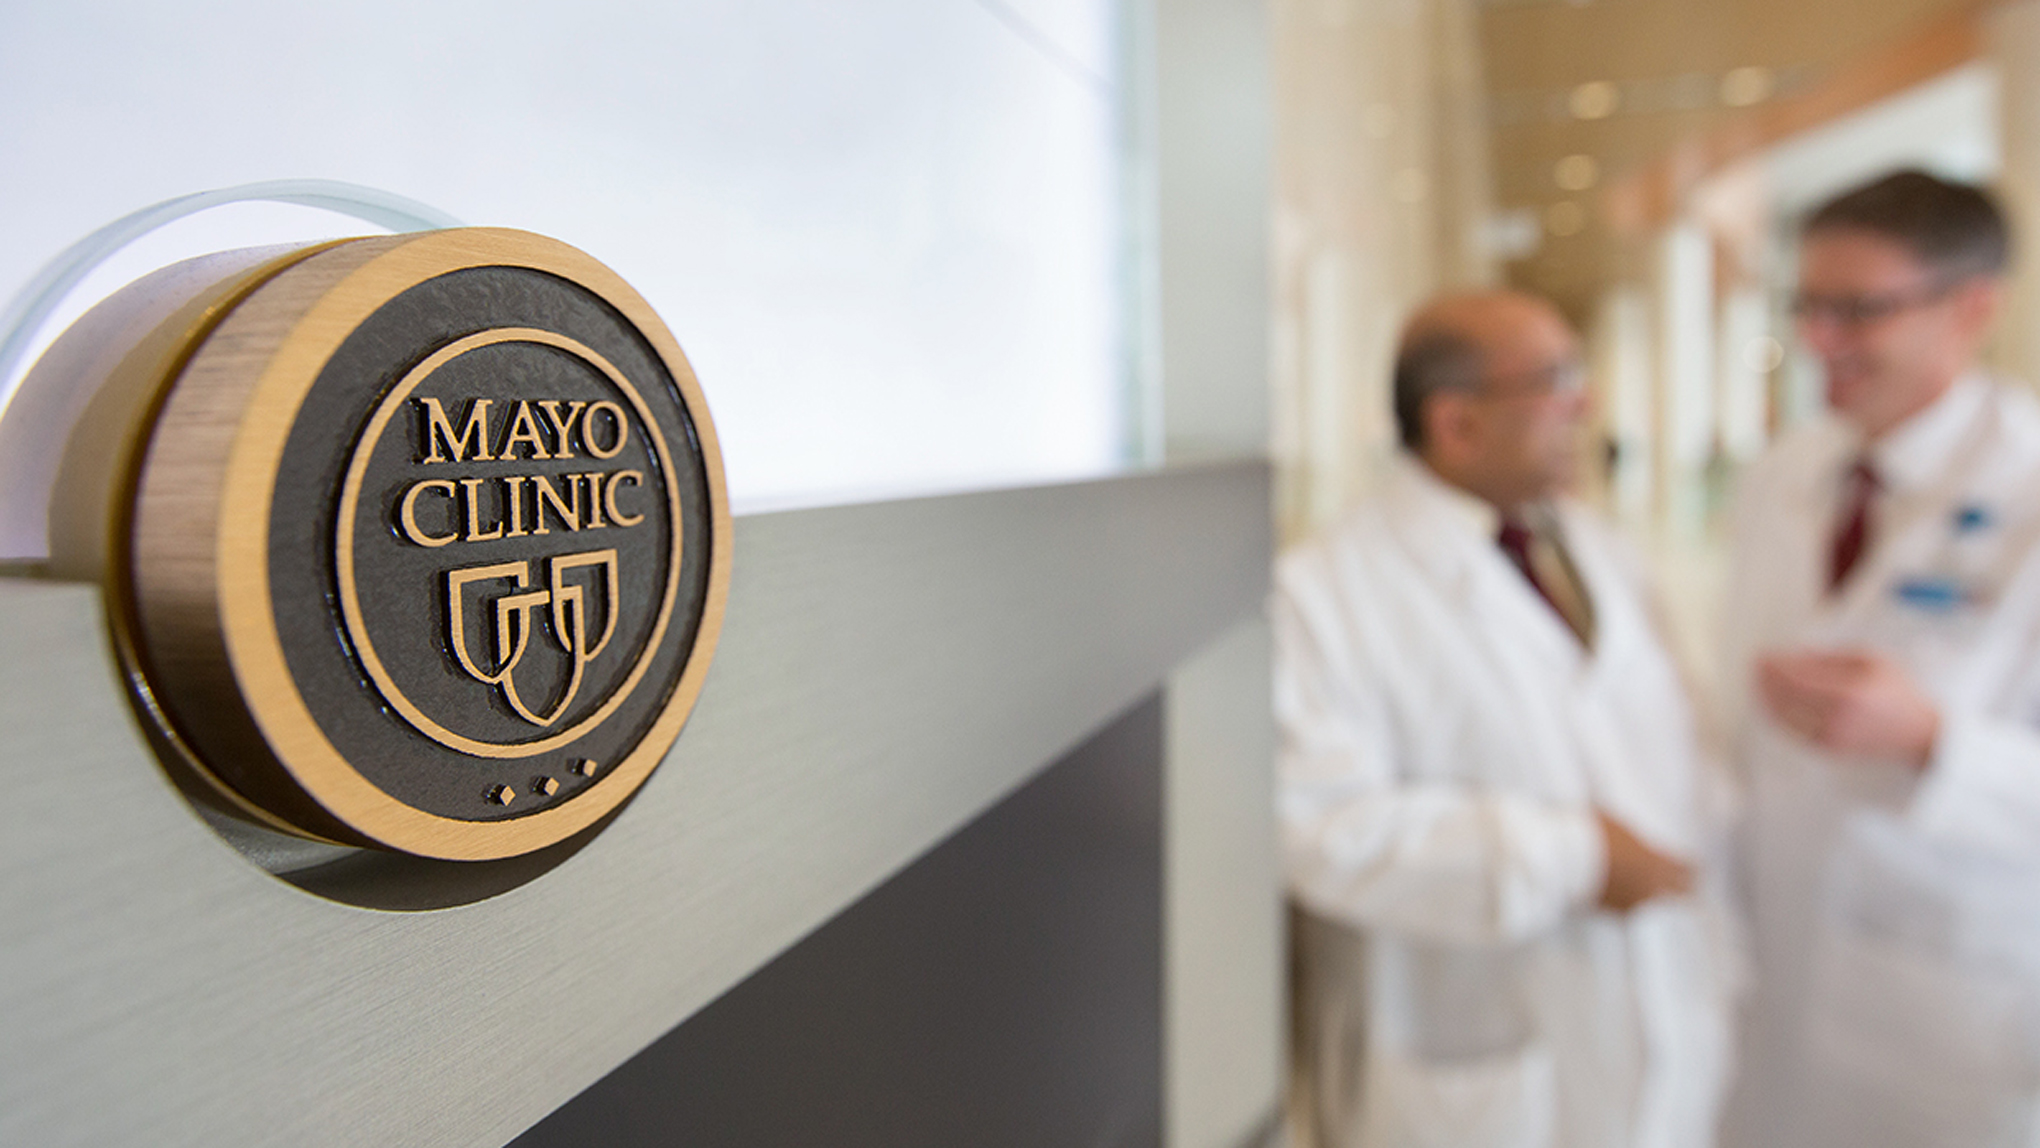 Mayo Clinic is one of the best-regarded hospitals in the country.